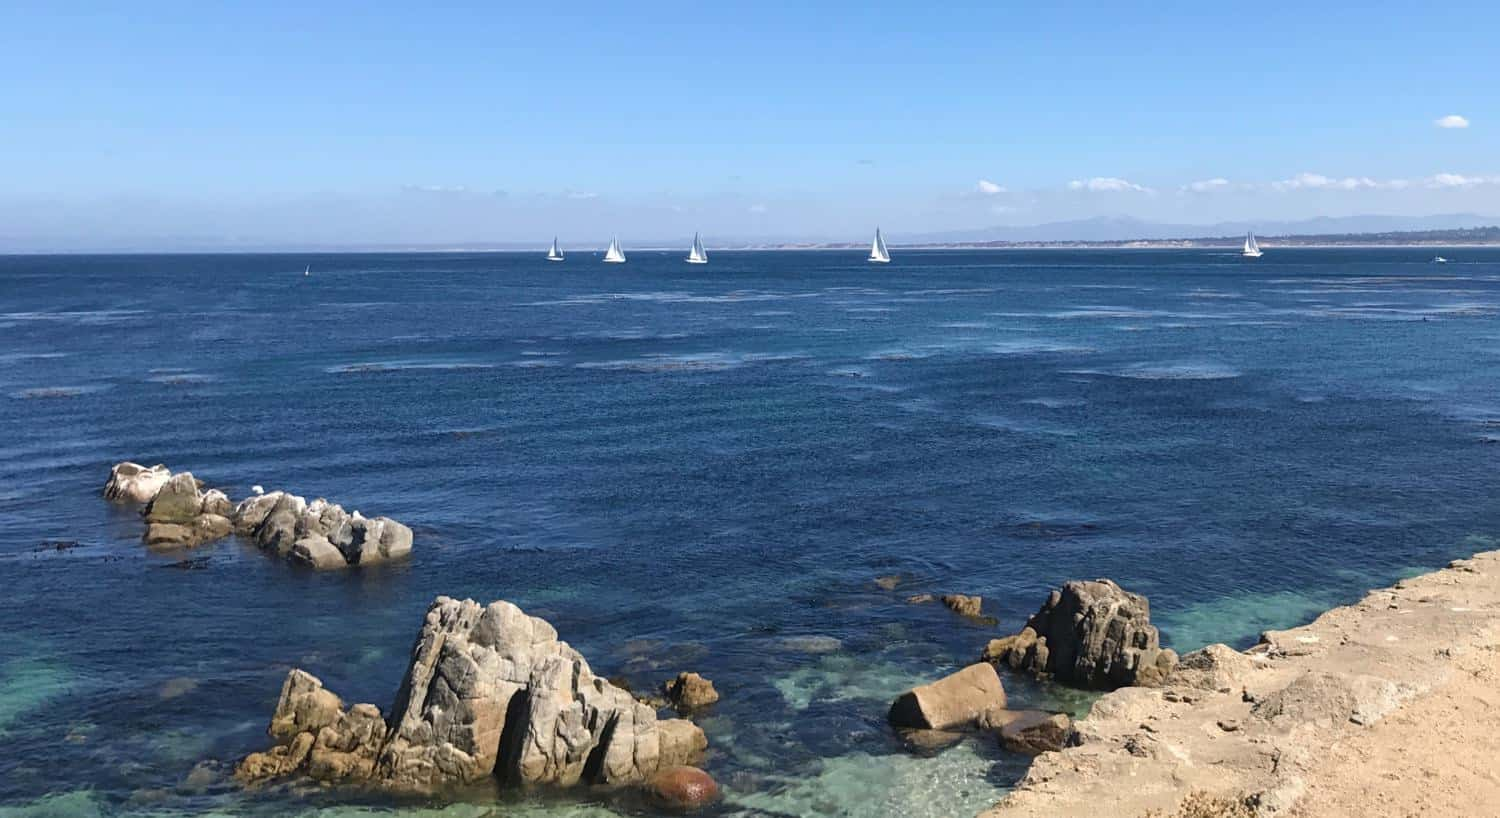 Blue Pacific ocean with white sailboats in the distance and a rocky shoreline